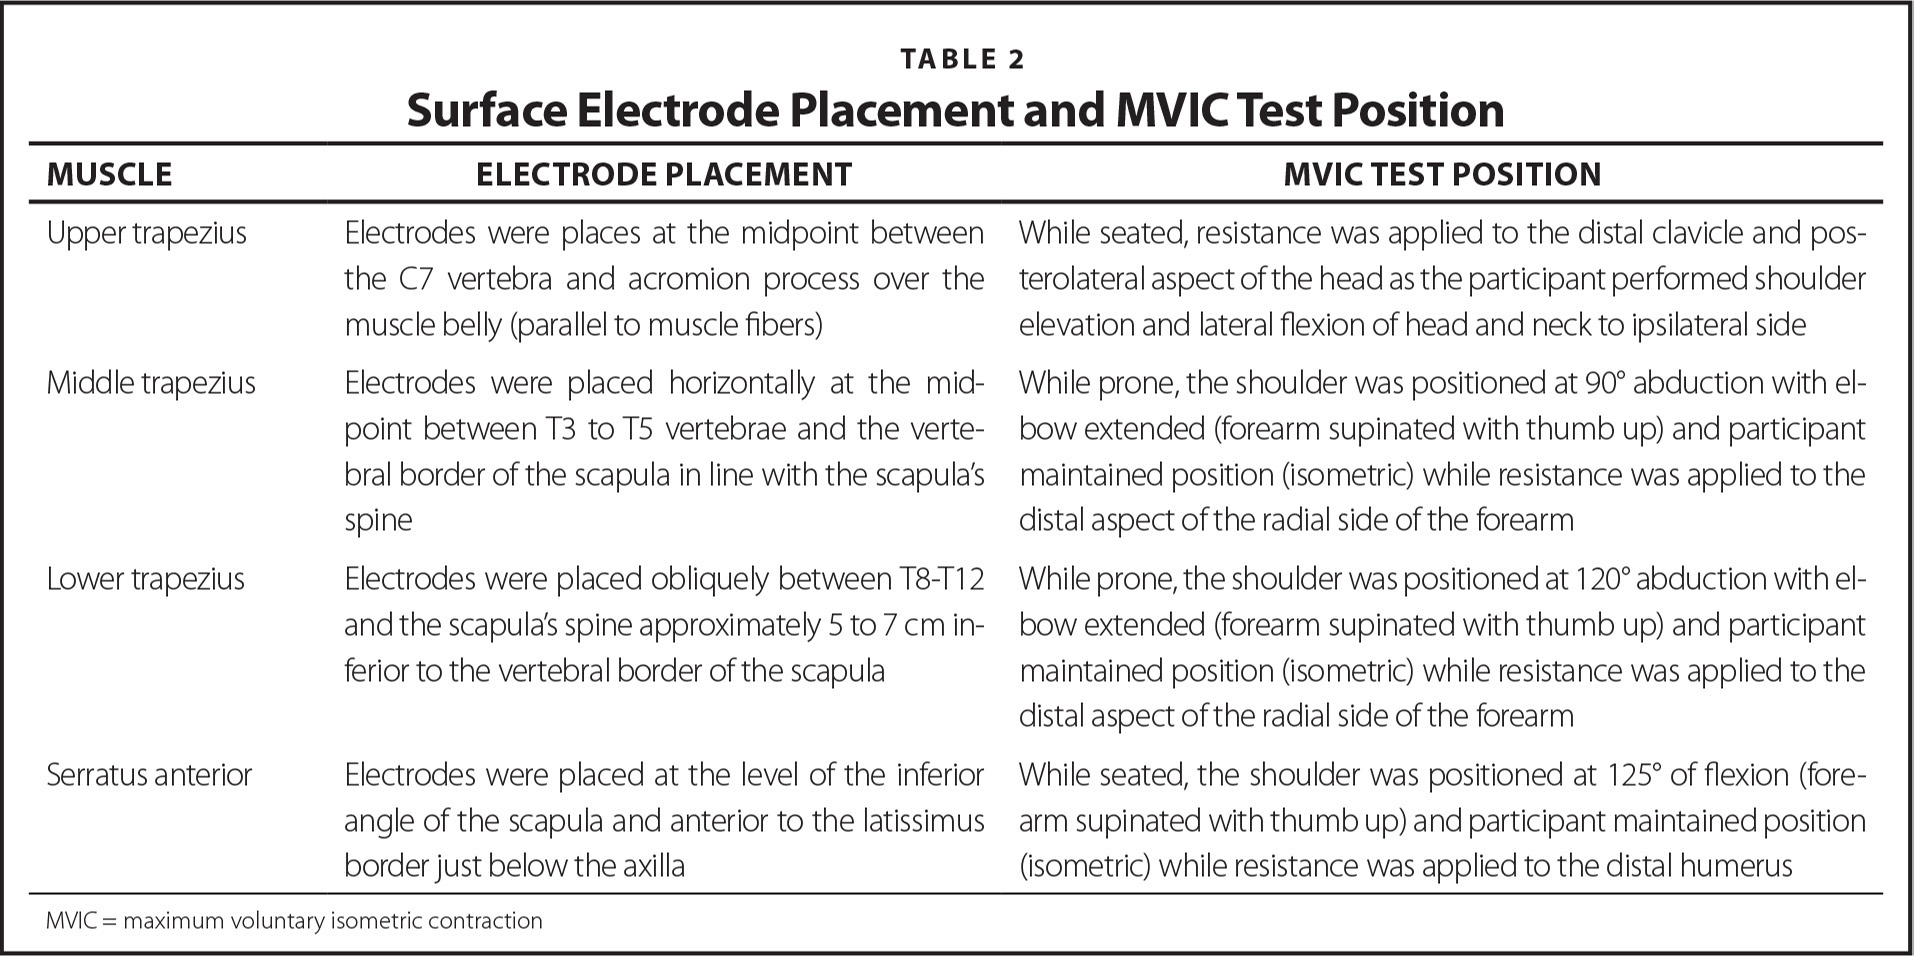 Surface Electrode Placement and MVIC Test Position